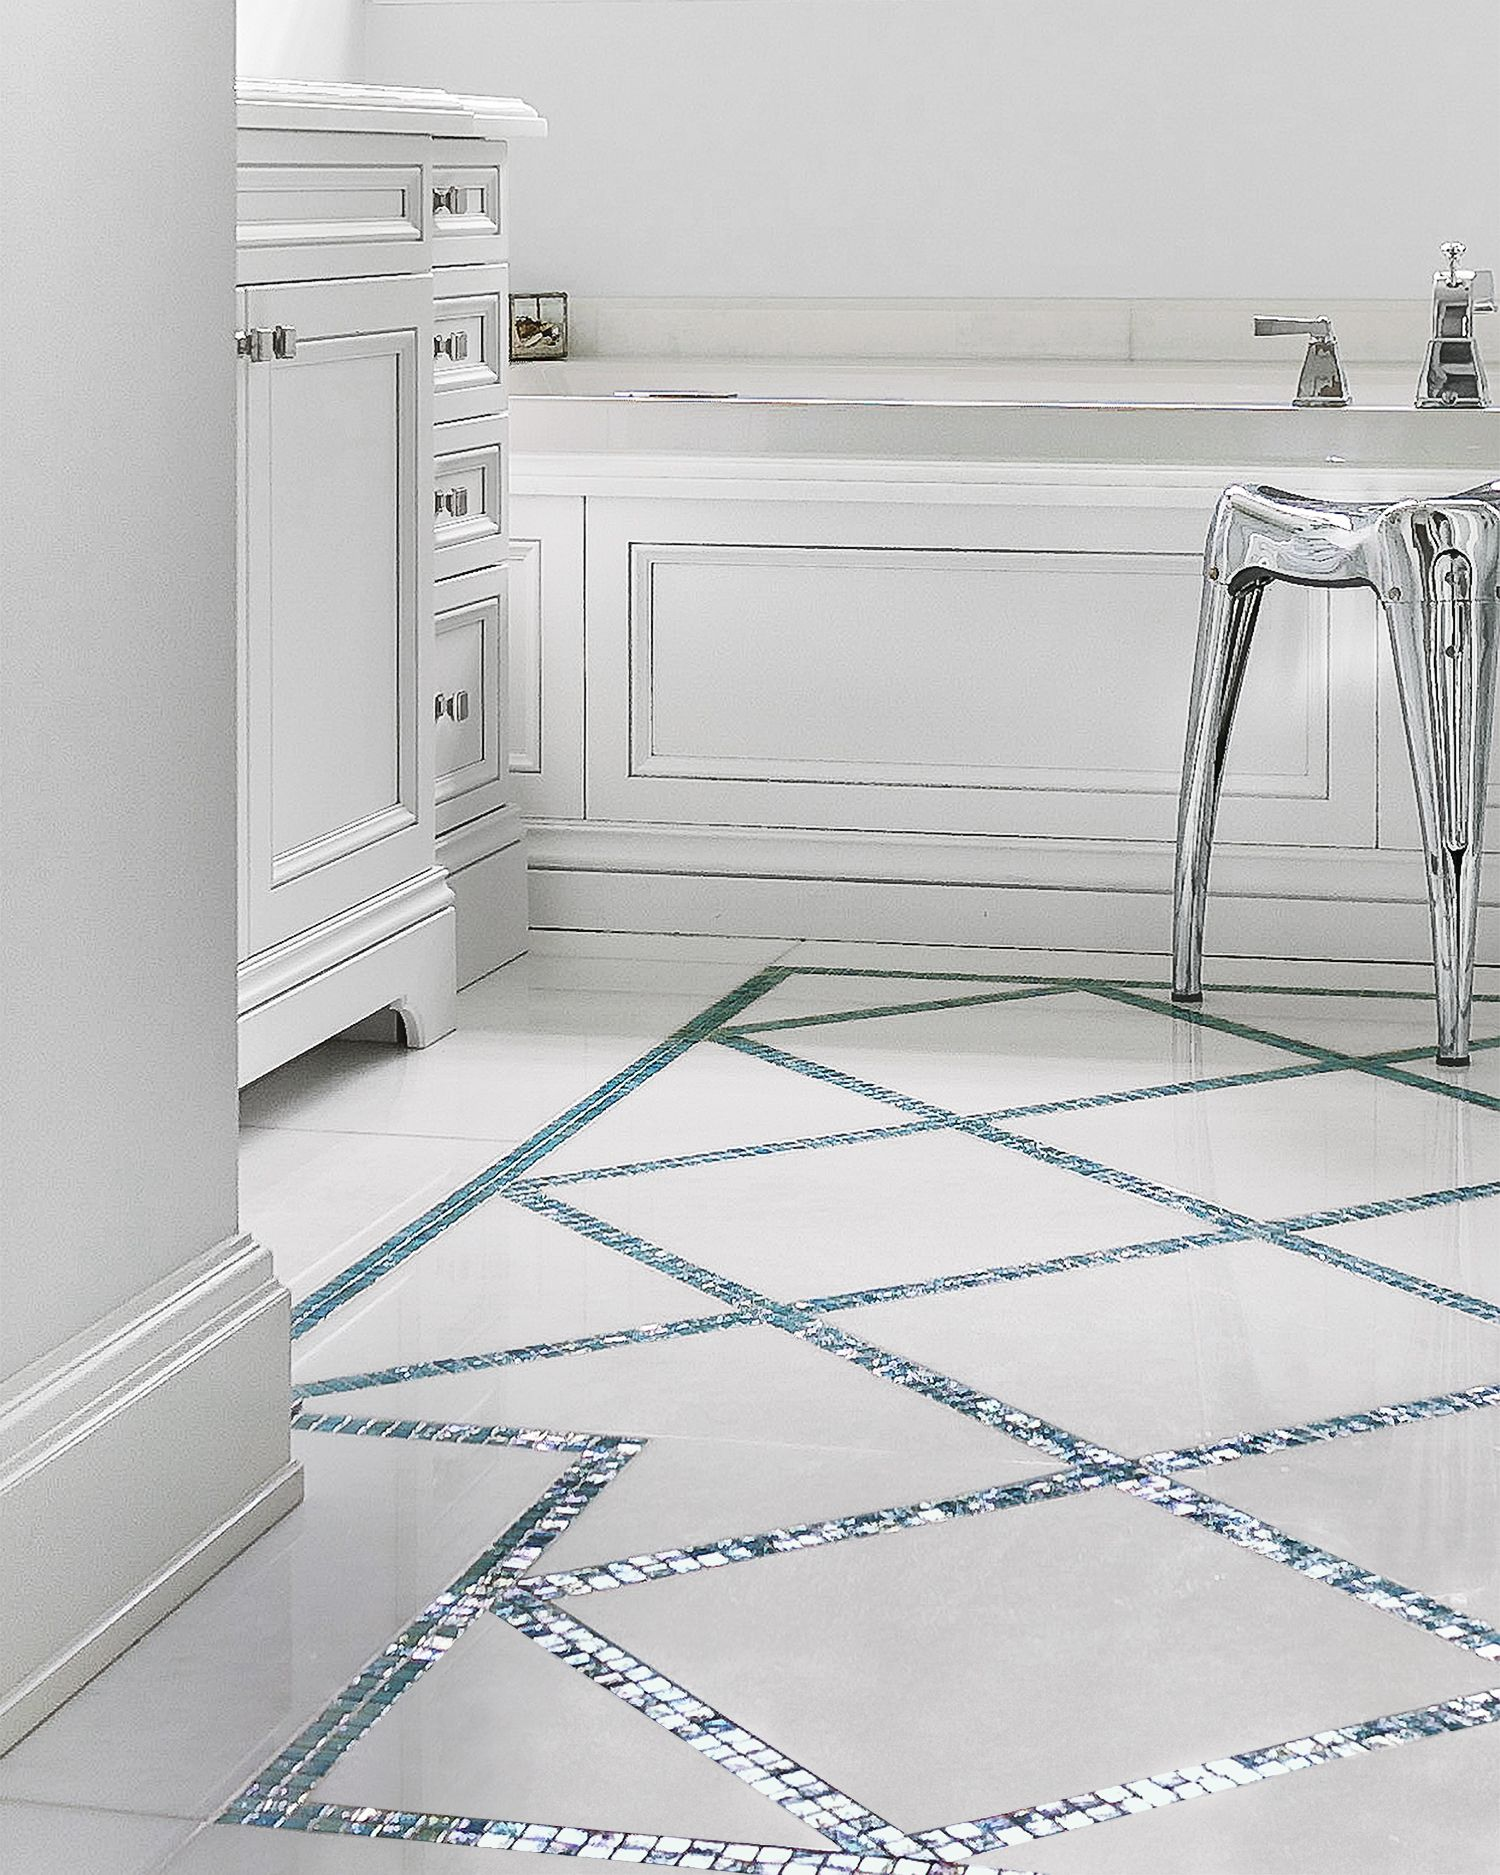 All About Glass Mosaic Tile Marble Bathroom Floor Glass Tile Bathroom Mosaic Bathroom Tile